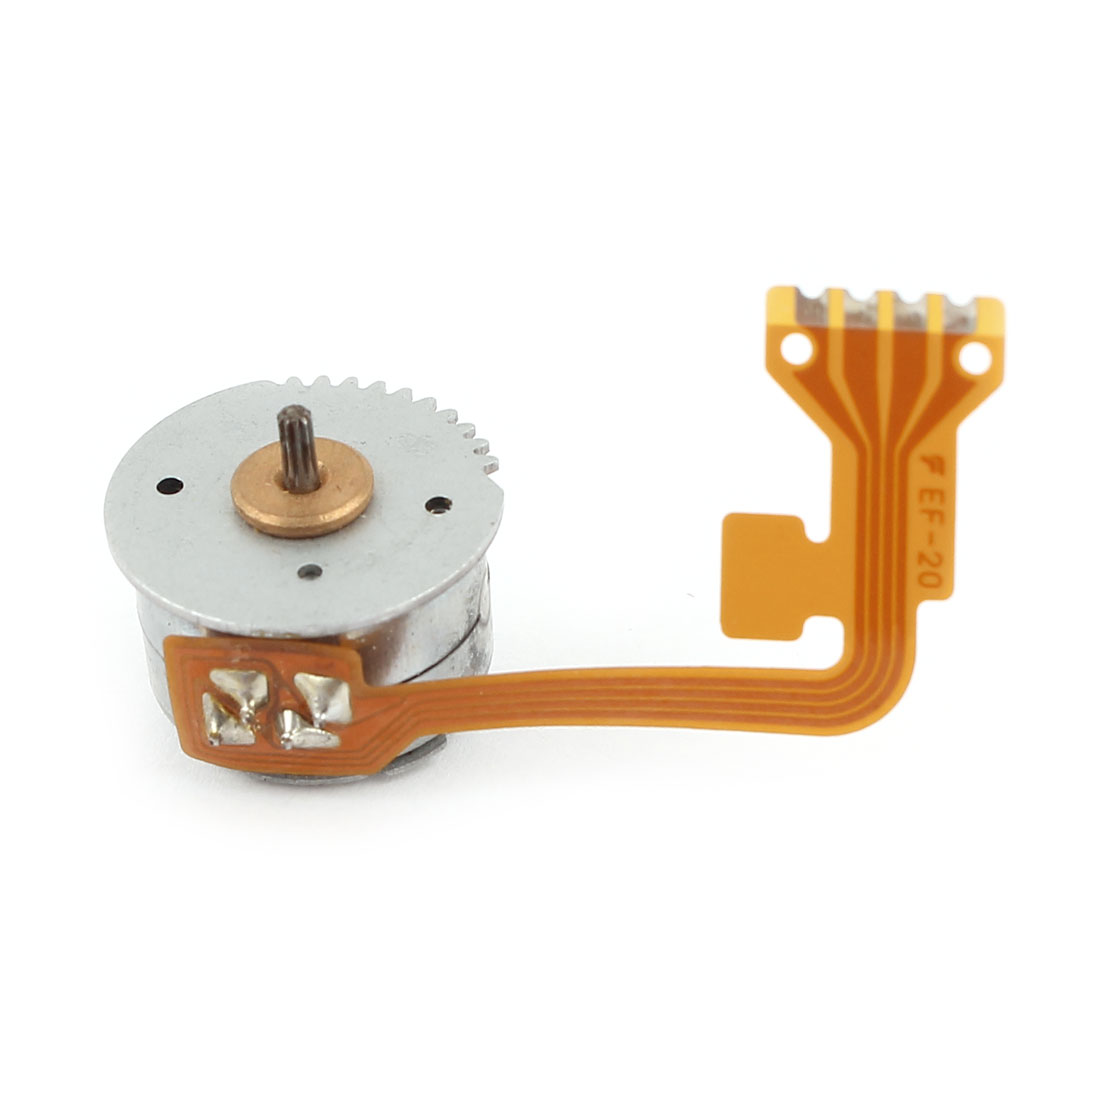 Gear Shaft 2 Phase 4 Wire Micro-Step Stepping Stepper Motor 15mm x 10mm DC 3-6V